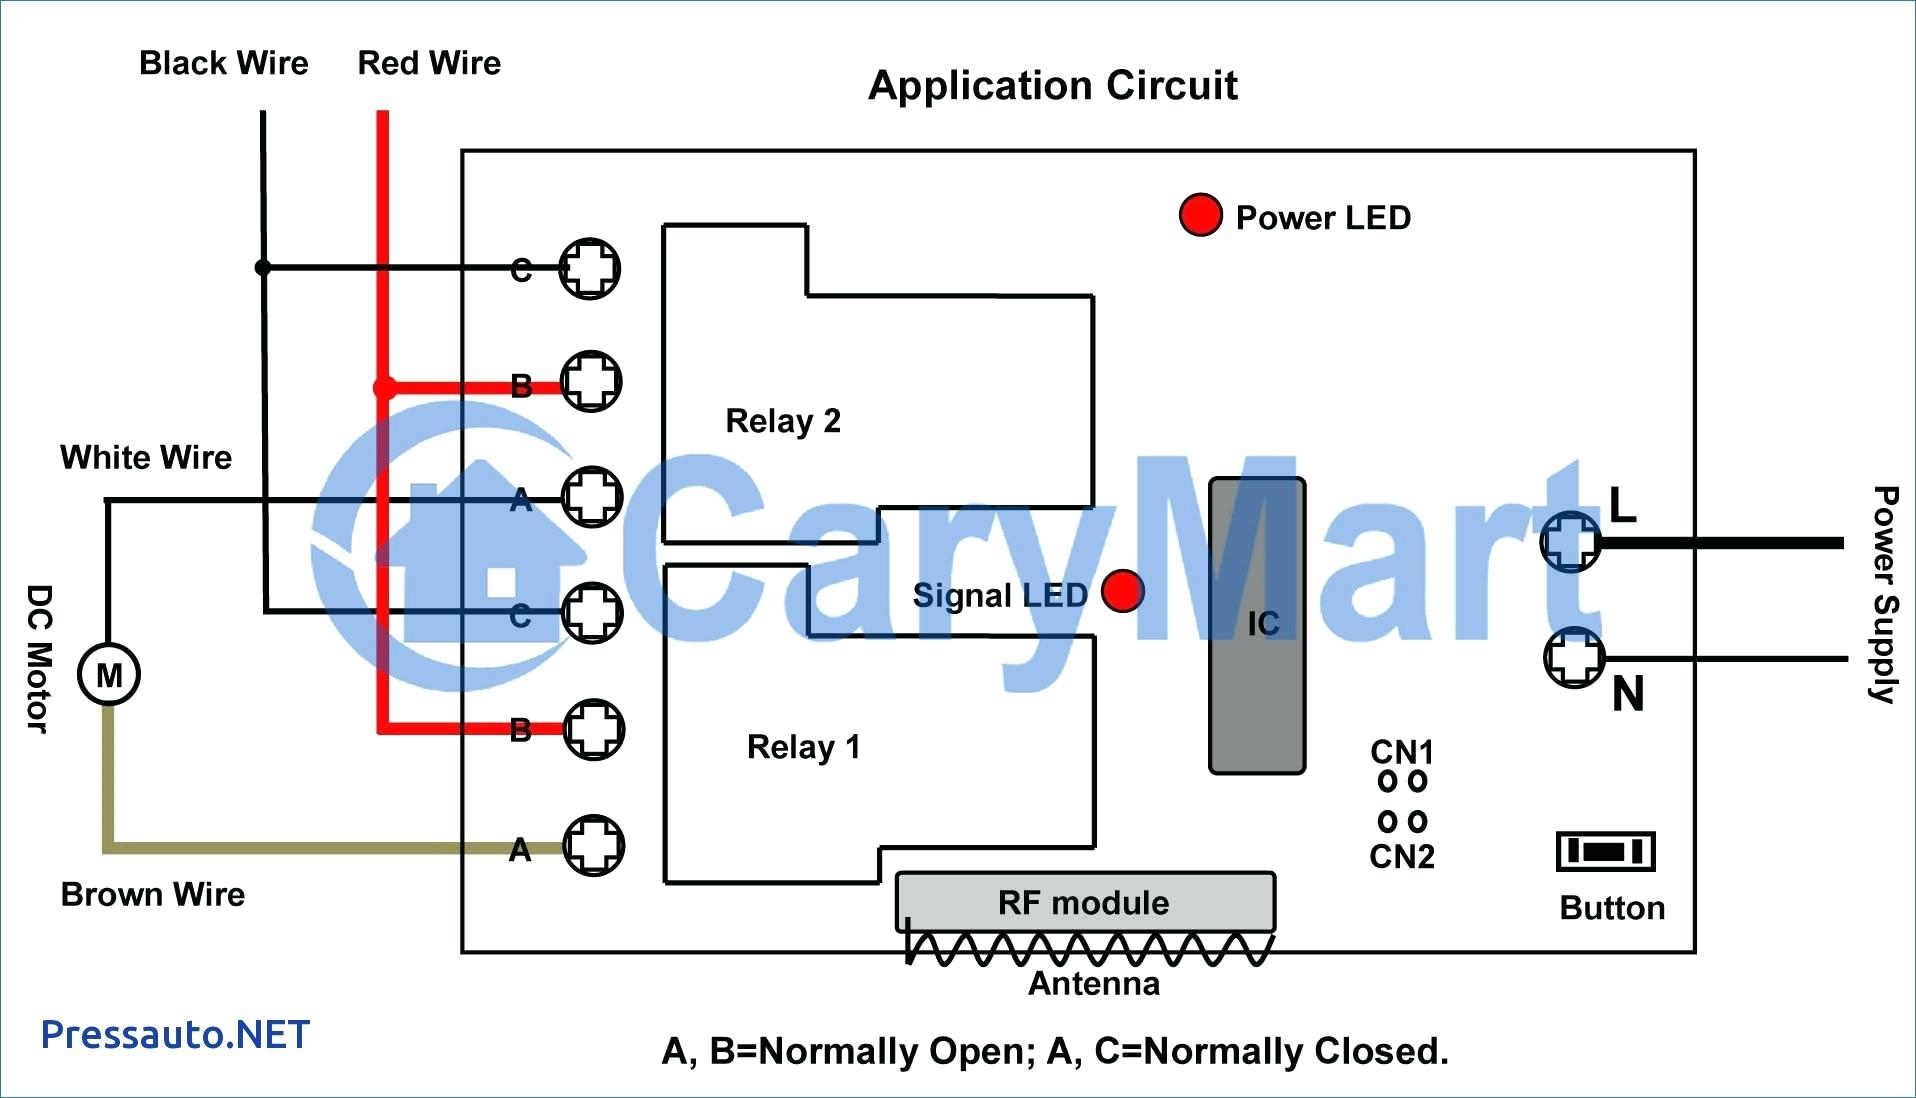 Warn Winch Remote Wiring Diagram Free Download | Wiring Diagram on